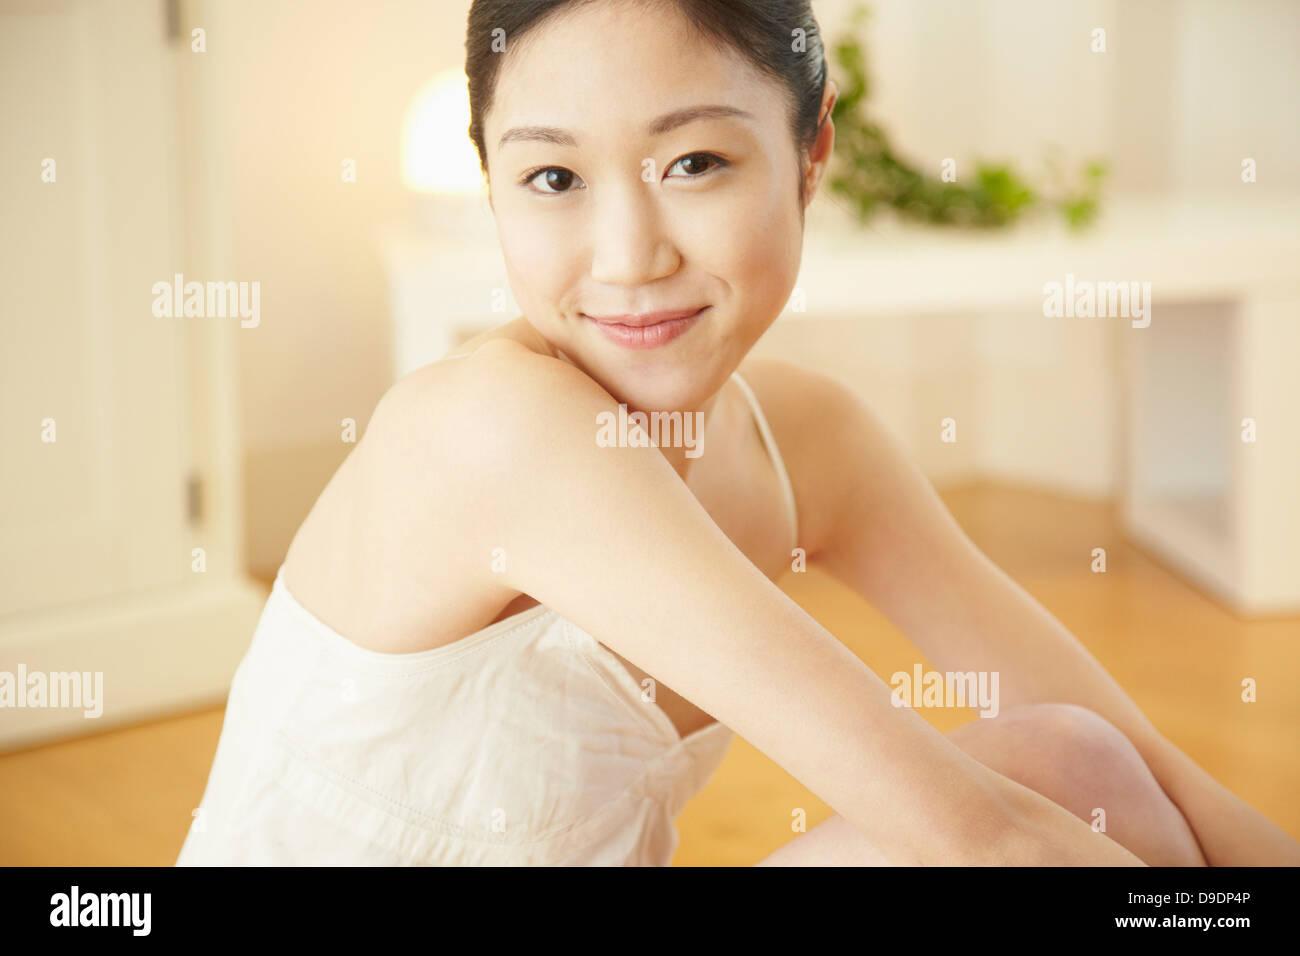 Portrait of woman wearing white vest looking at camera - Stock Image